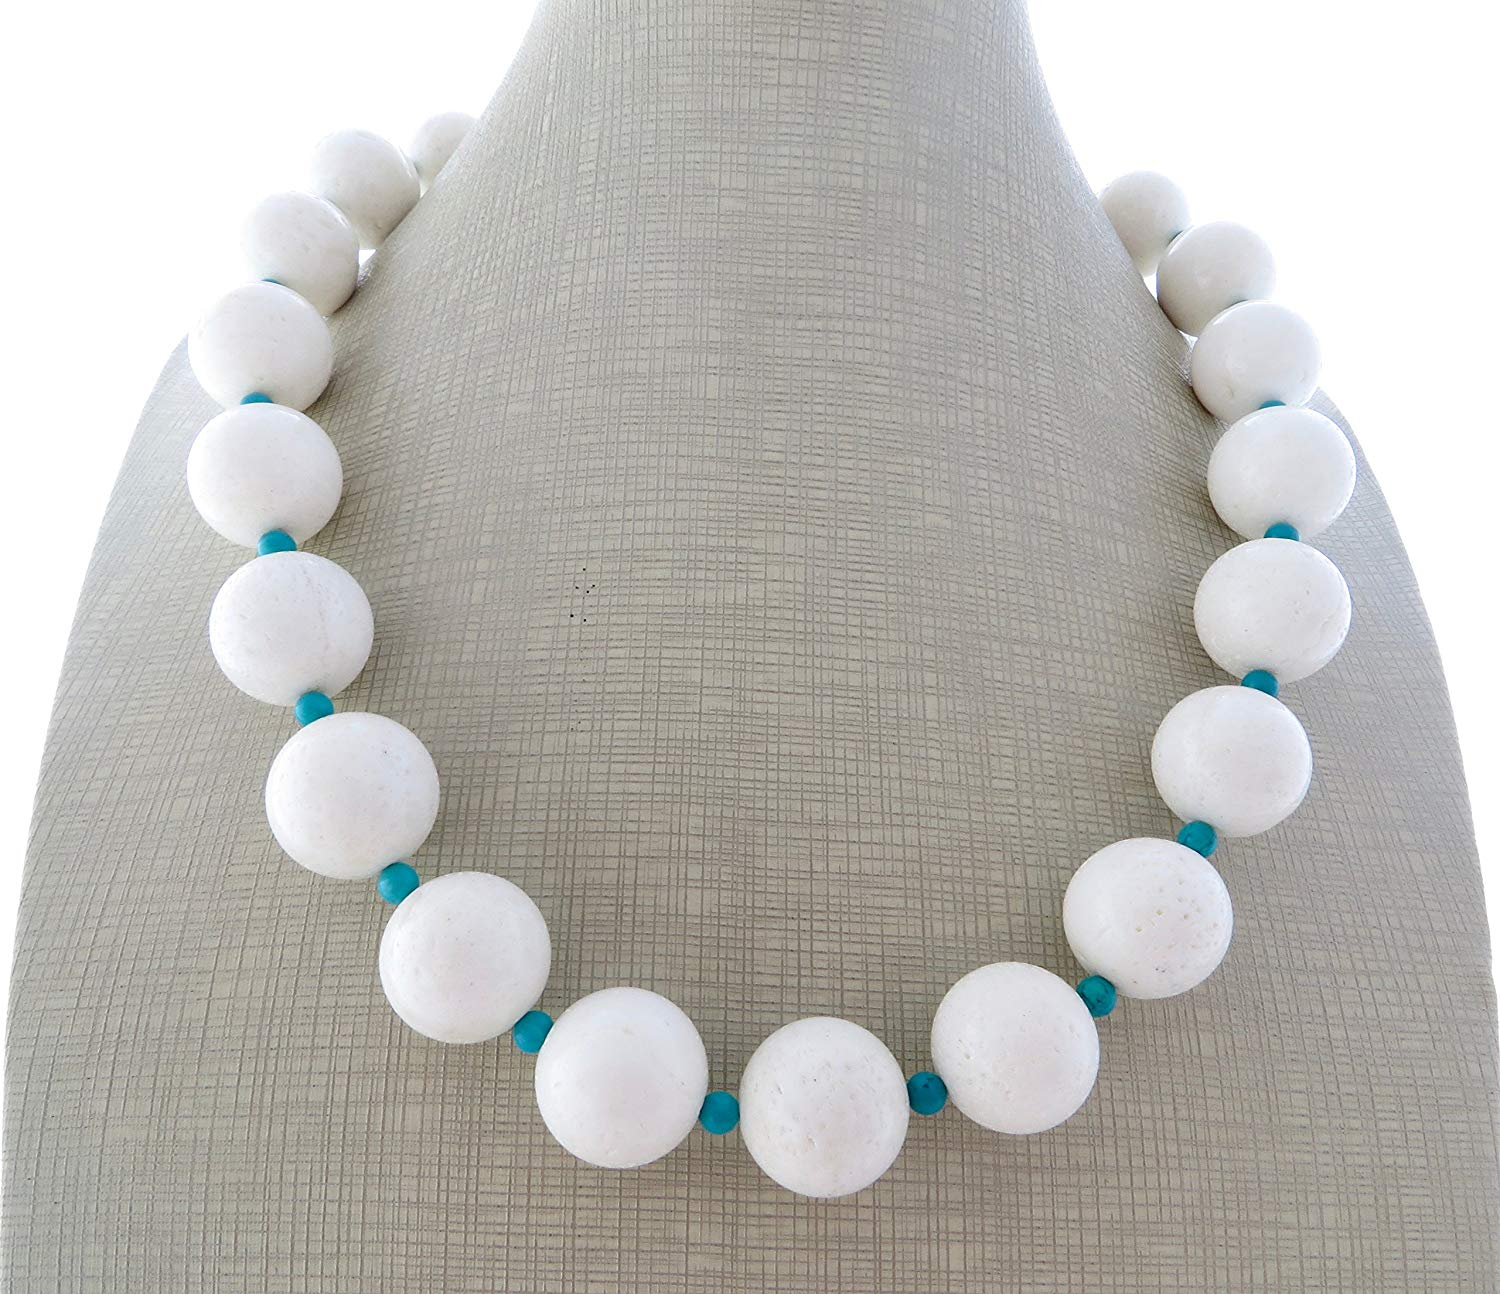 Coral necklace, white and turquoise chunky necklace, choker necklace, big bold necklace, beaded necklace, summer jewelry